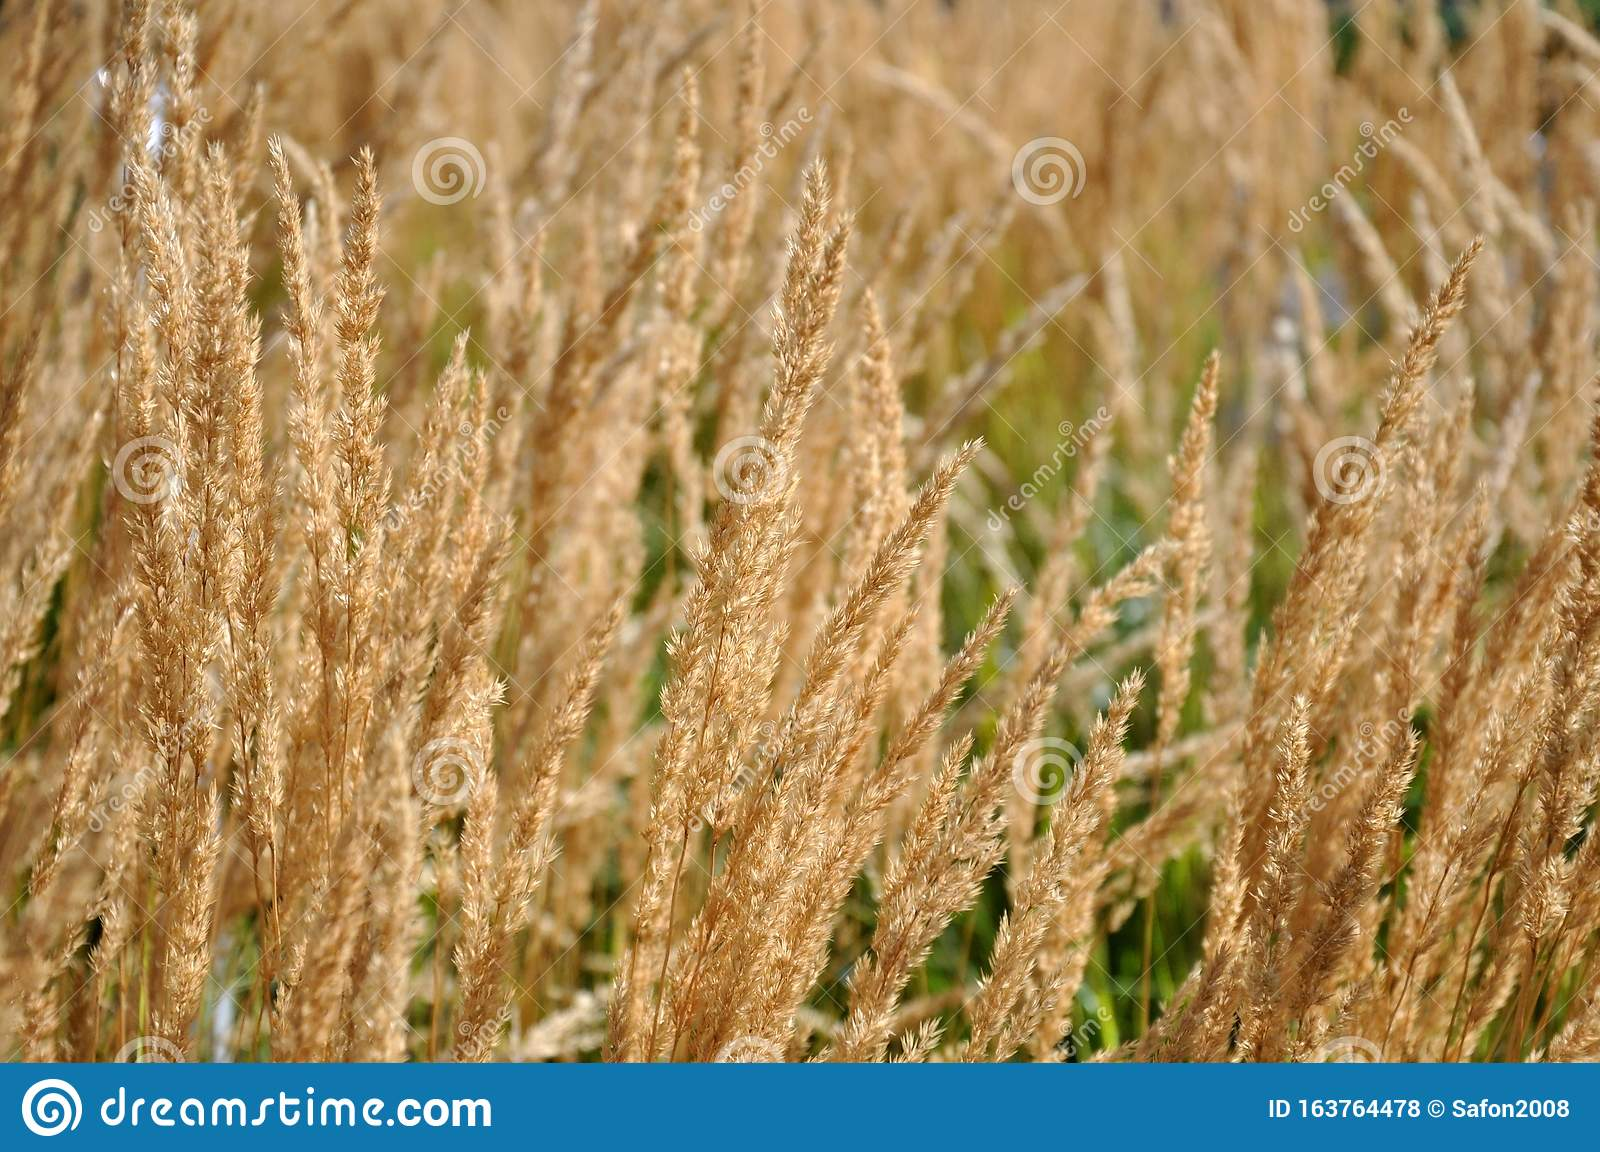 Selective Soft Focus Of Dry Grass On A Flower Bed Reed Stem Texture Background Stock Photo Image Of Reed Background 163764478